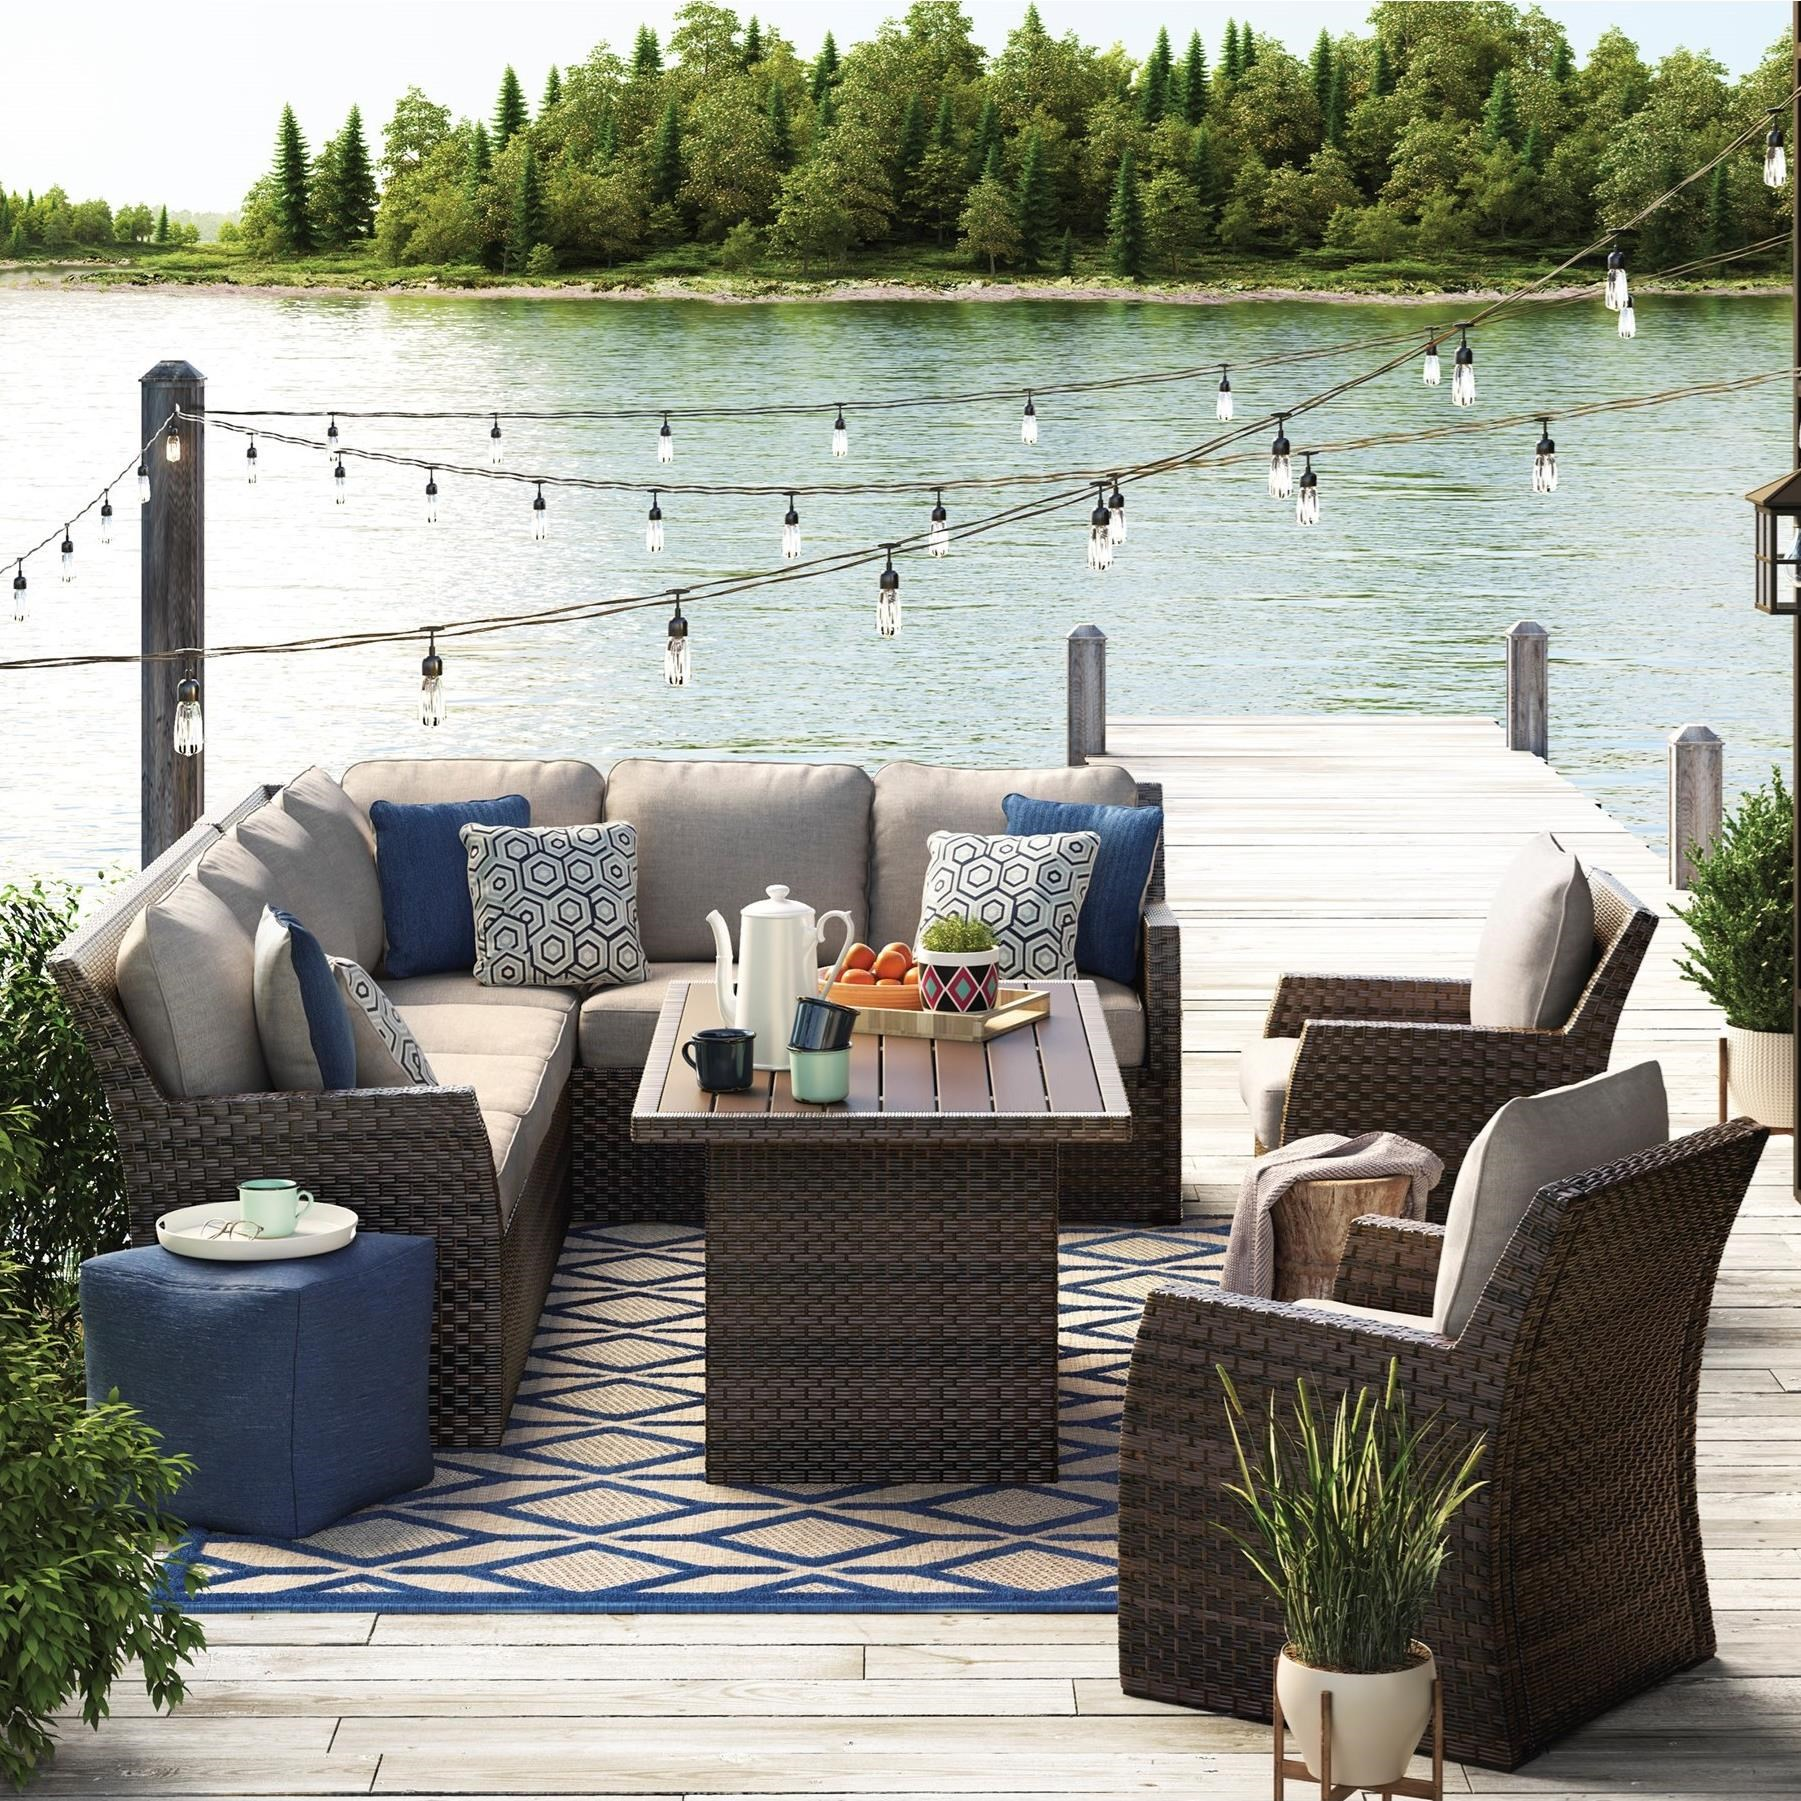 Outdoor Sectional with Table & Lounge Chairs